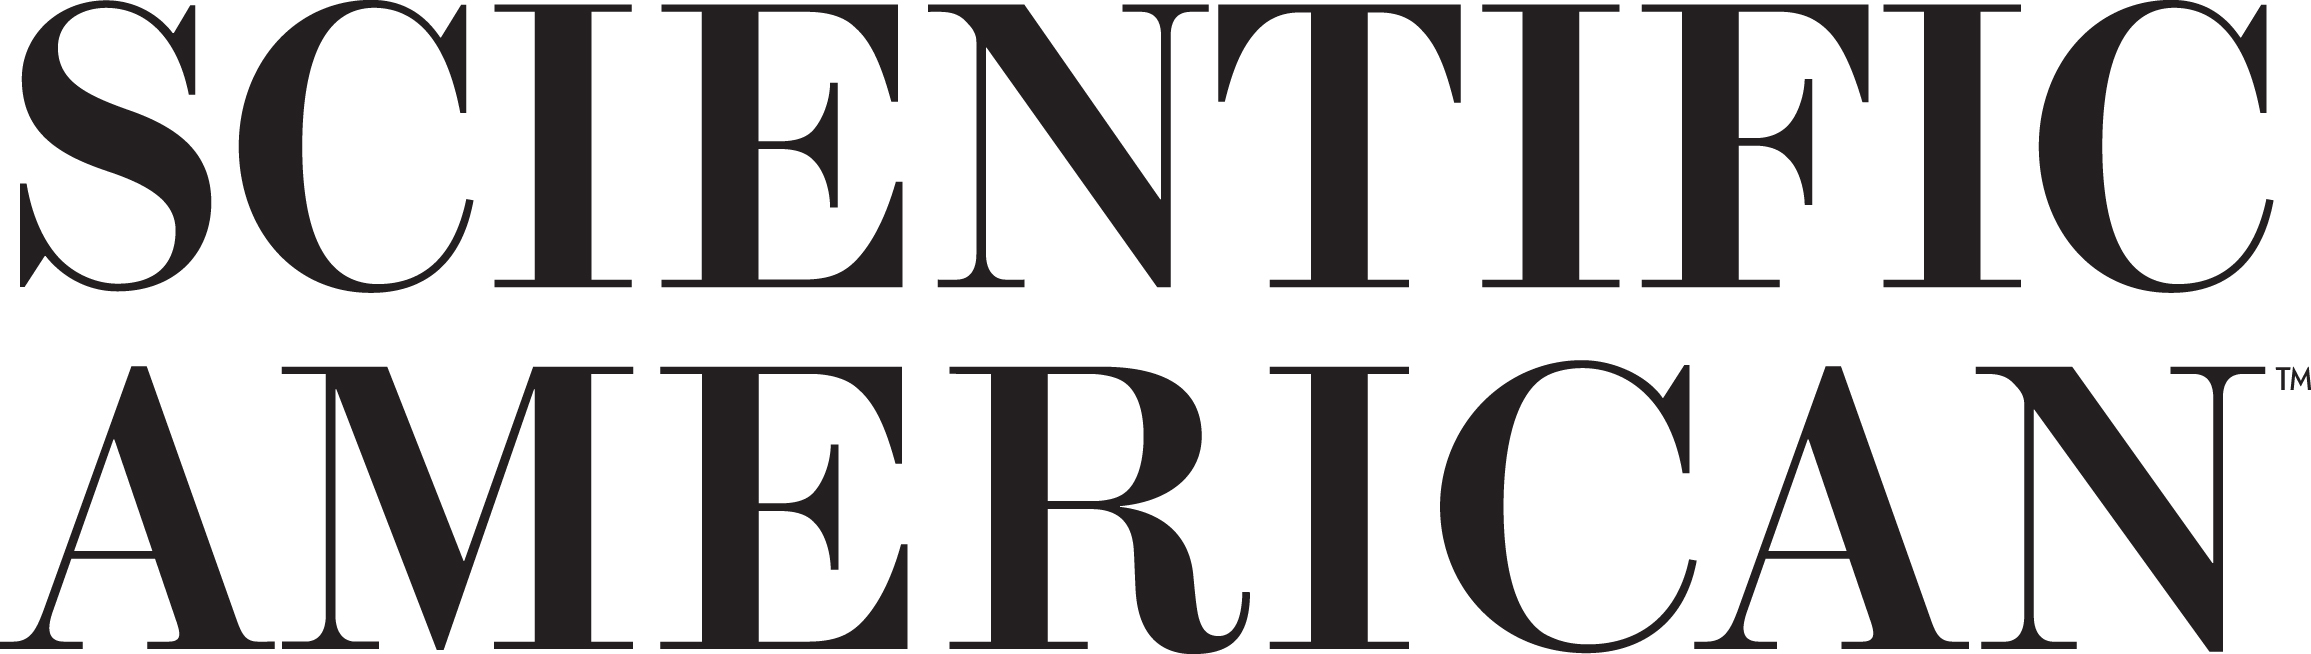 scientific_american_logo.jpg